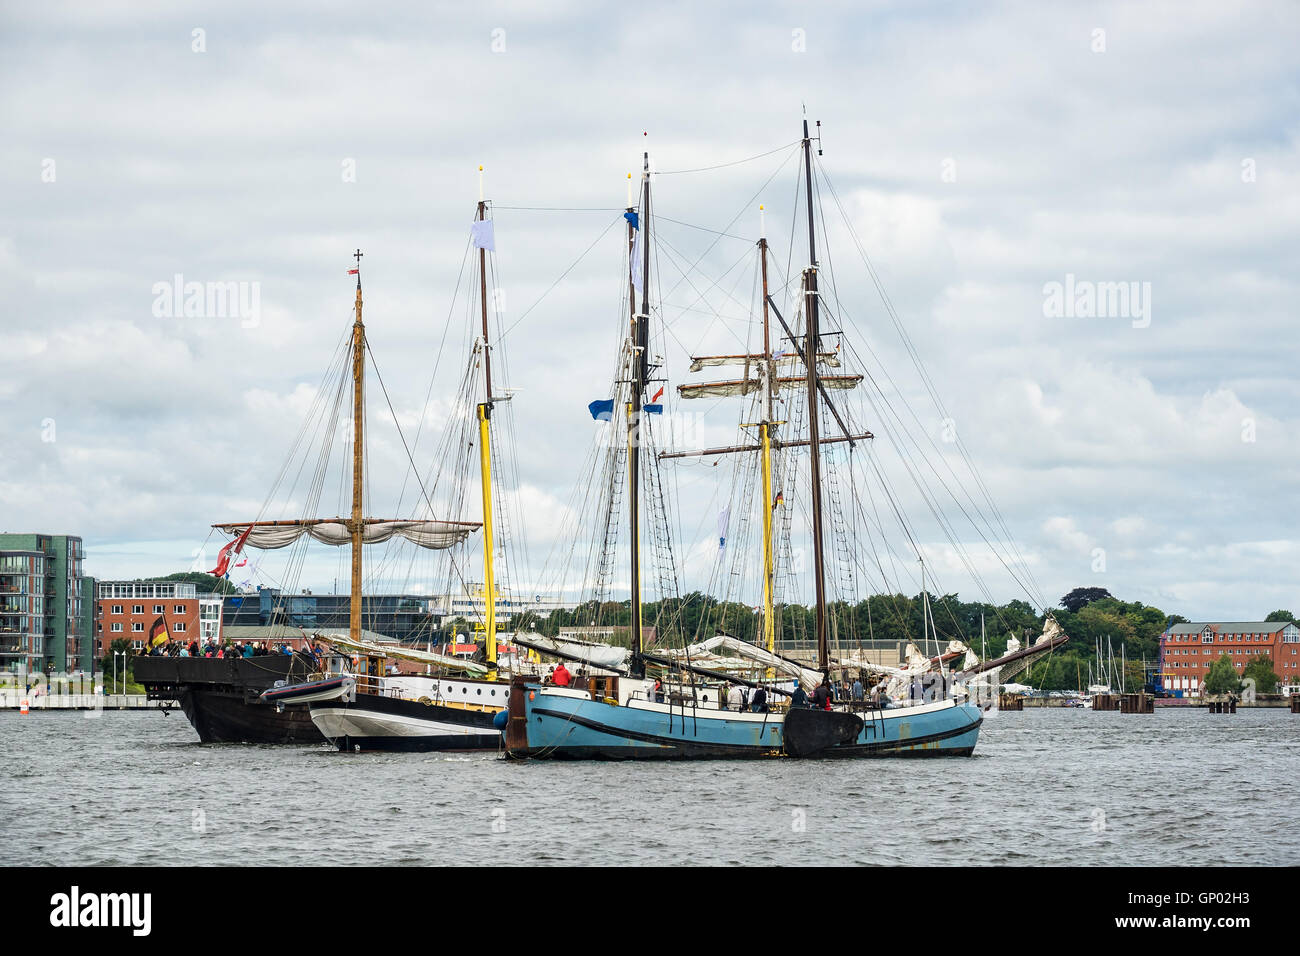 Sailing ships on the Hanse Sail in Rostock (Germany) - Stock Image